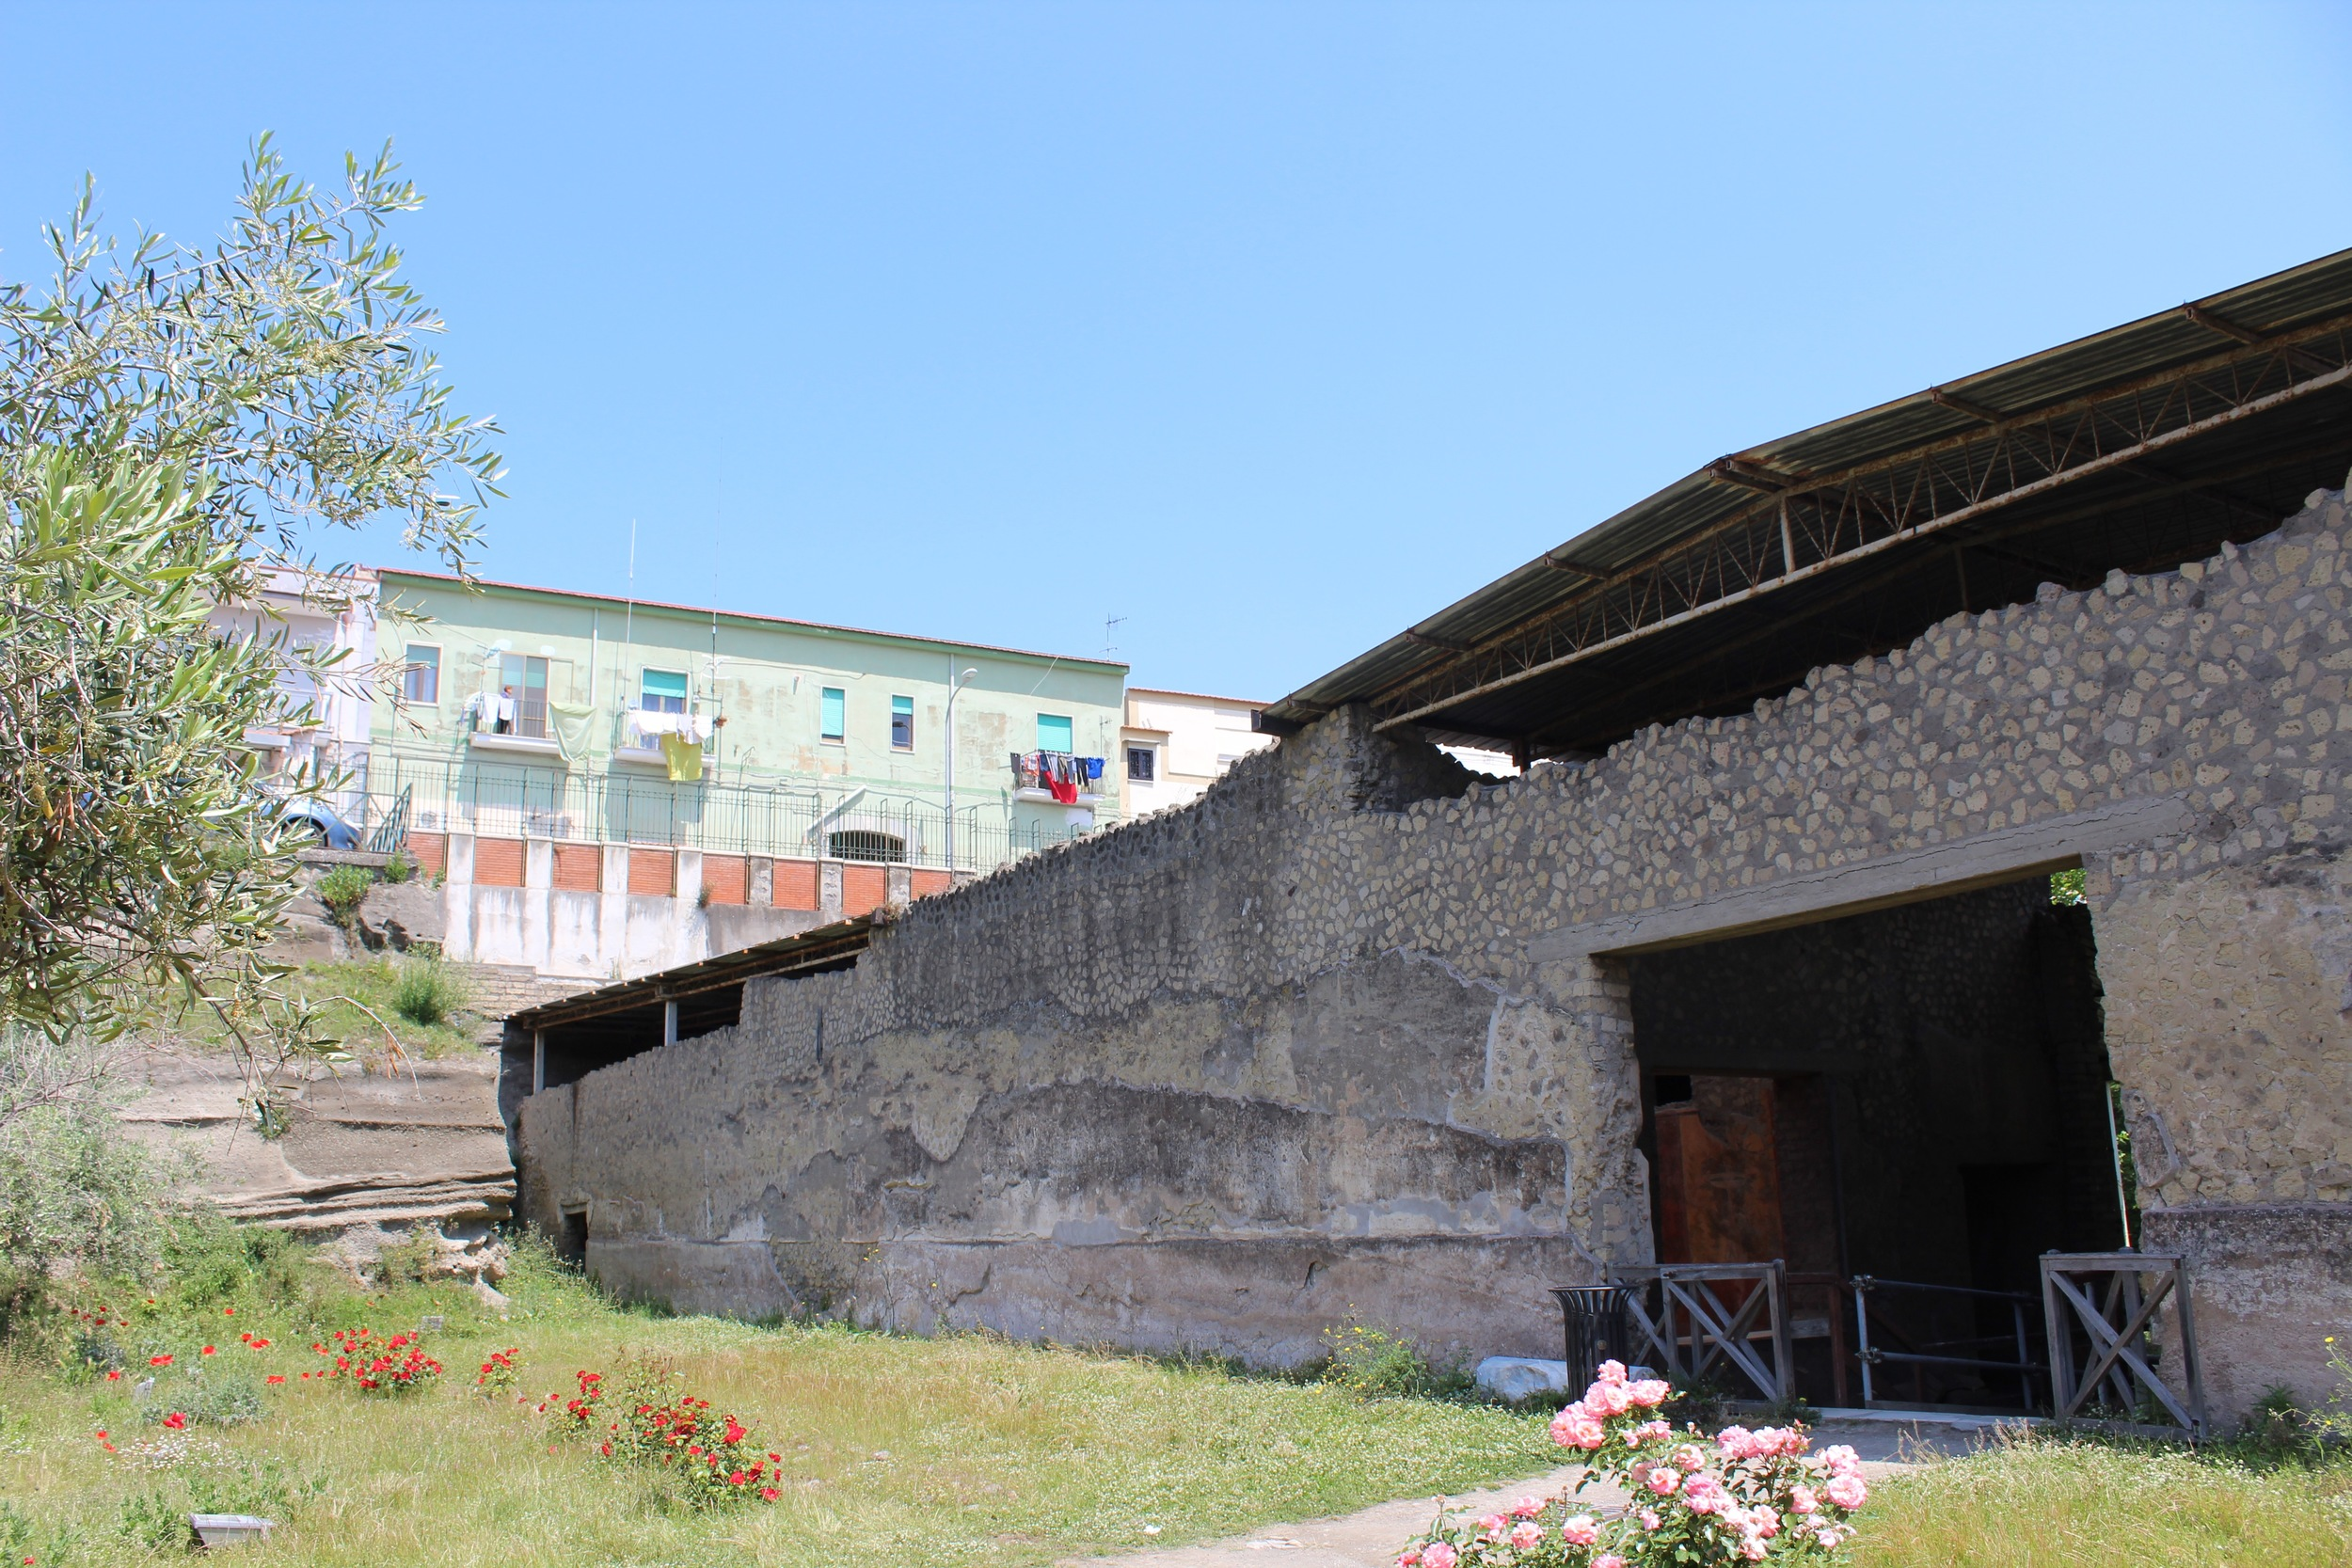 The modern city of Torre Annunziata surrounds the ruins of Villa Oplontis.